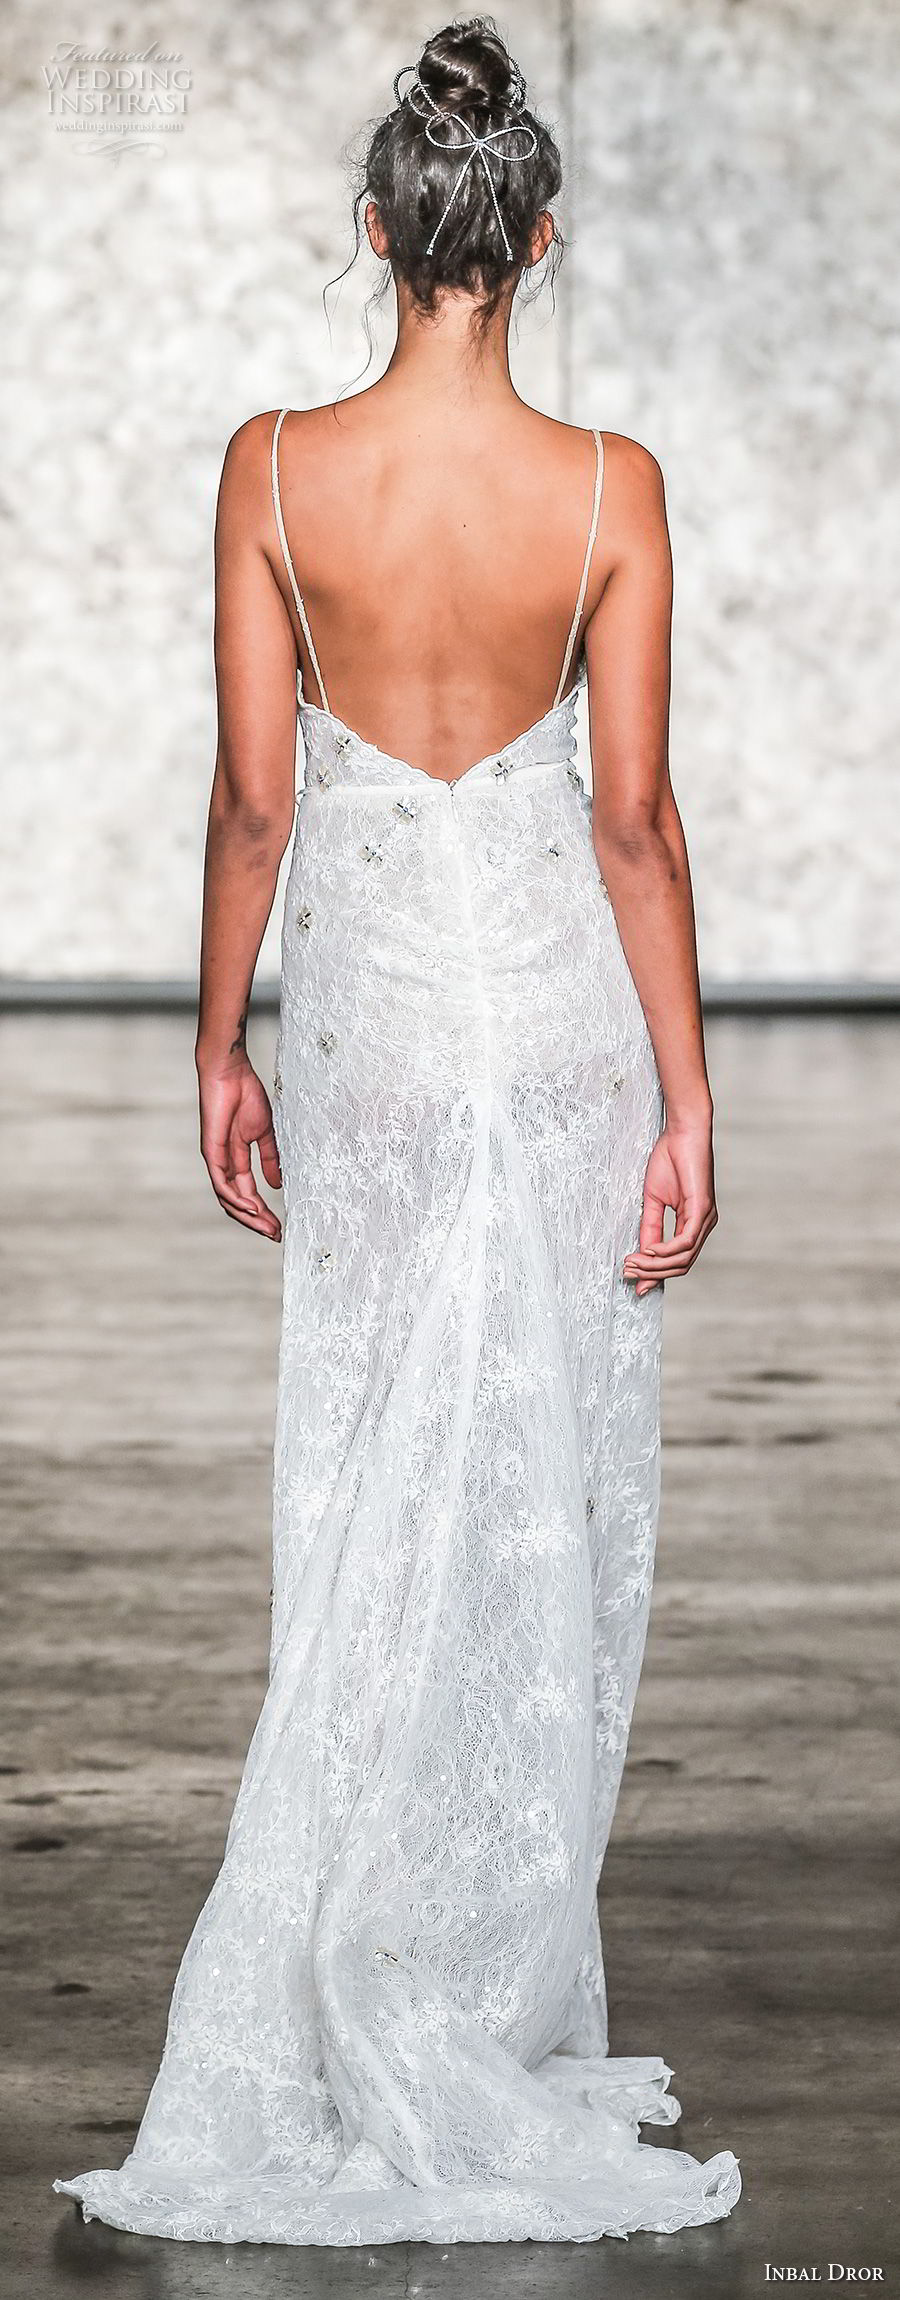 inbal dror fall 2018 bridal sleeveless spaghetti strap sweetheart neckline high slit sexy sheath wedding dress open back sweep train (13) bv